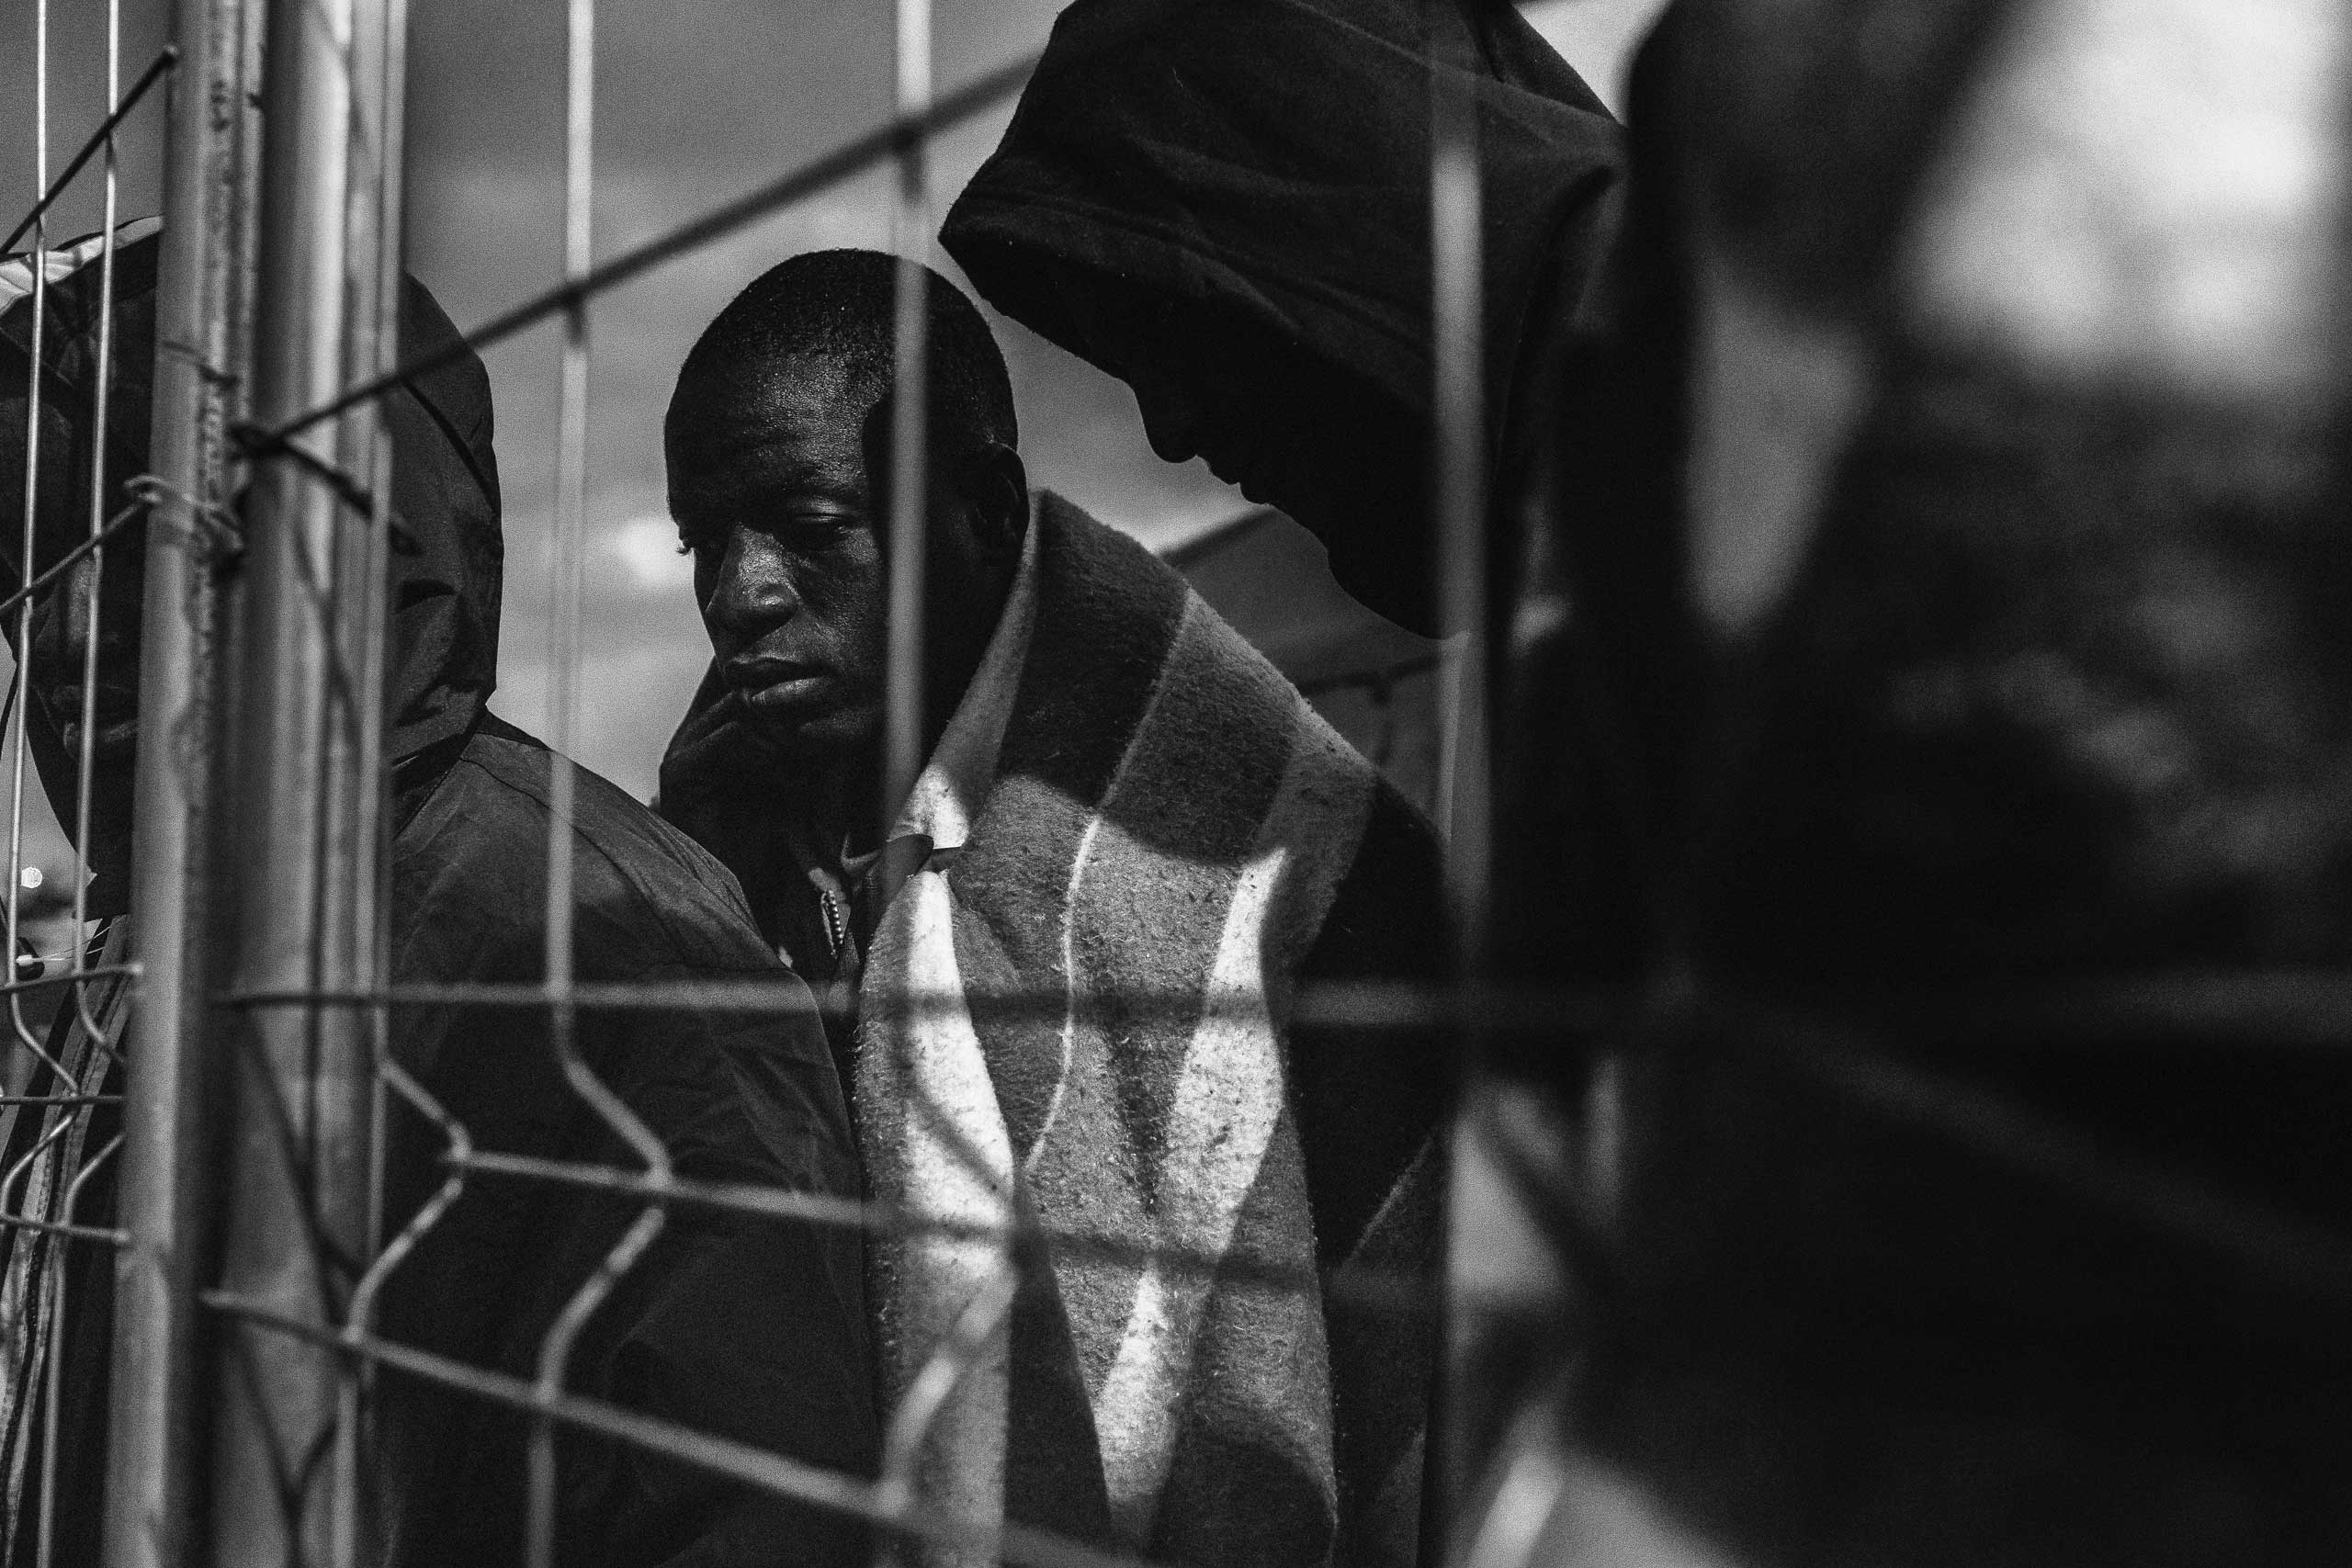 A group of Malian migrants seen inside the temporary immigration holding center built by the Spanish Army in Melilla in 2014.